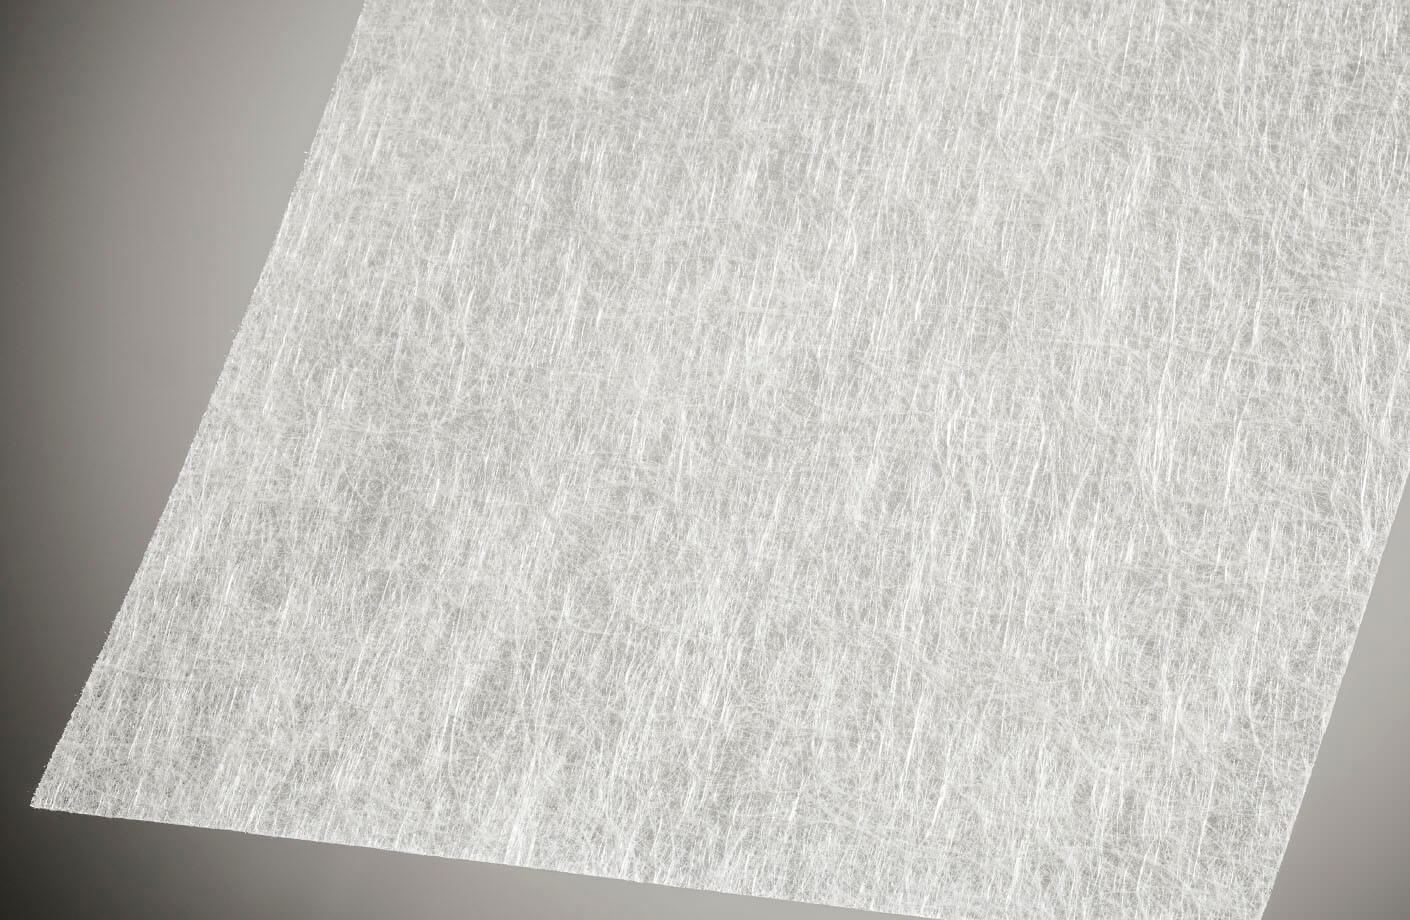 Colback nonwoven fabric suitable for anti-microbial & anti-allergy treatment air purifier filter